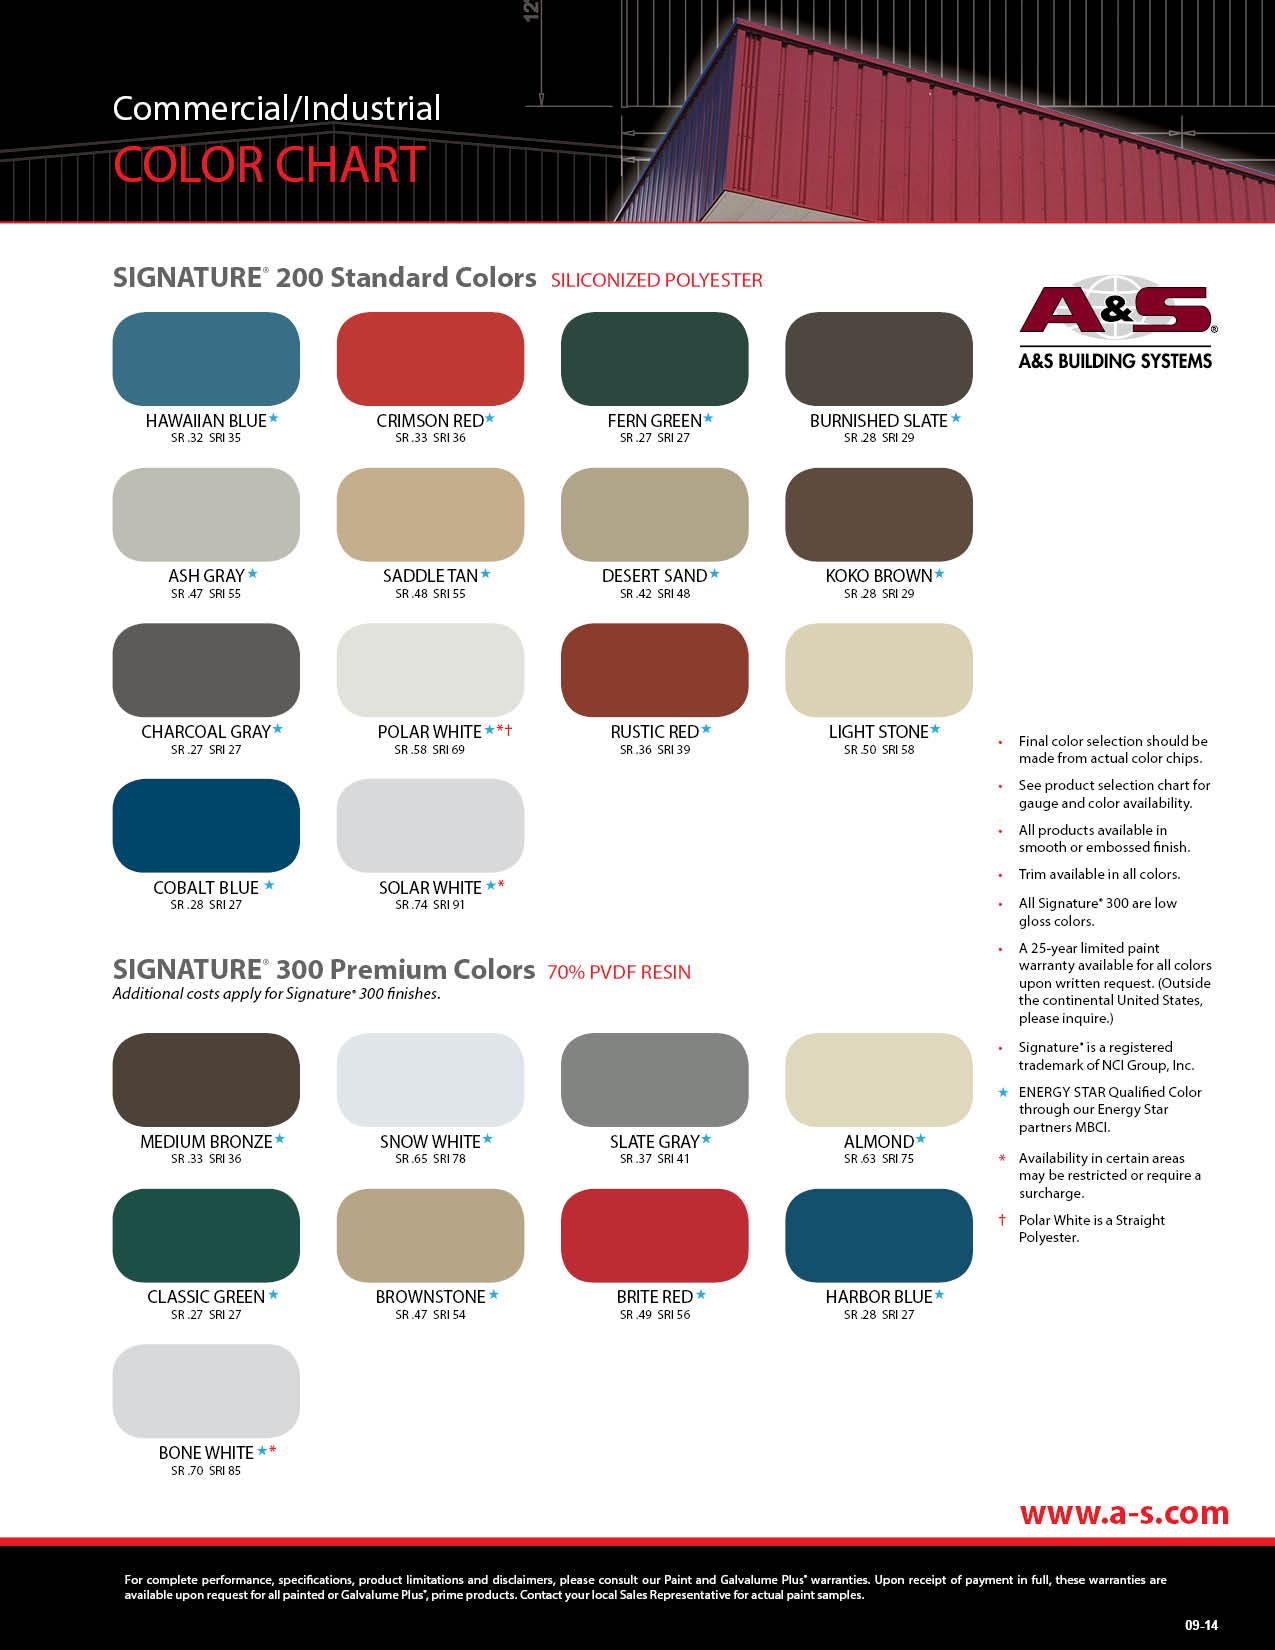 Welcome to A&S Building Systems